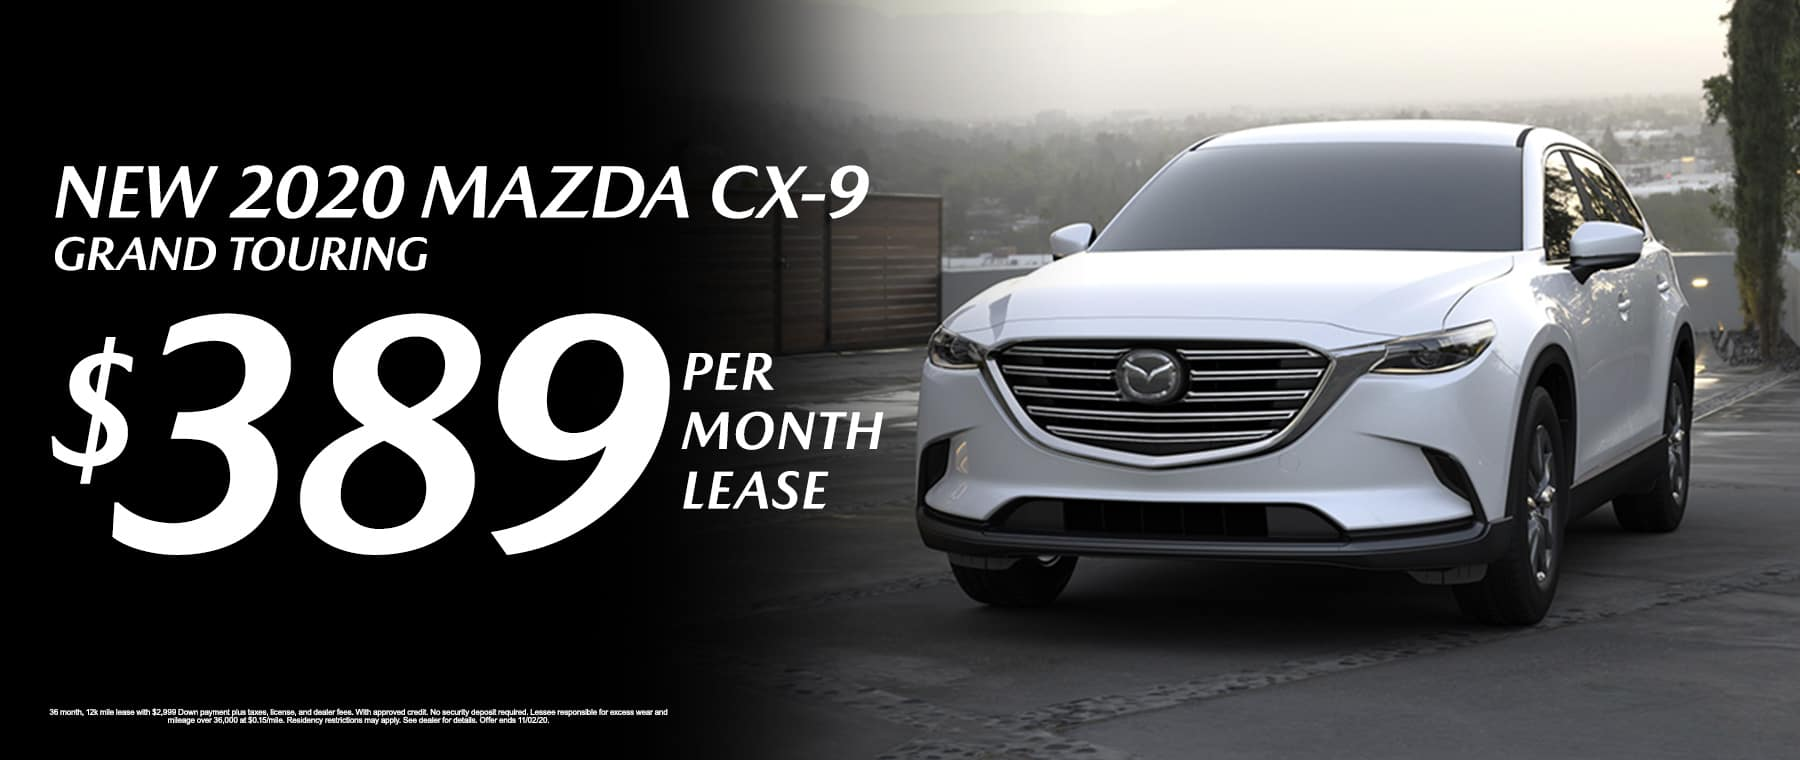 Lease a New 2020 Mazda CX-9 Grand Touring for $389/mo at Mazda of Fort Walton Beach